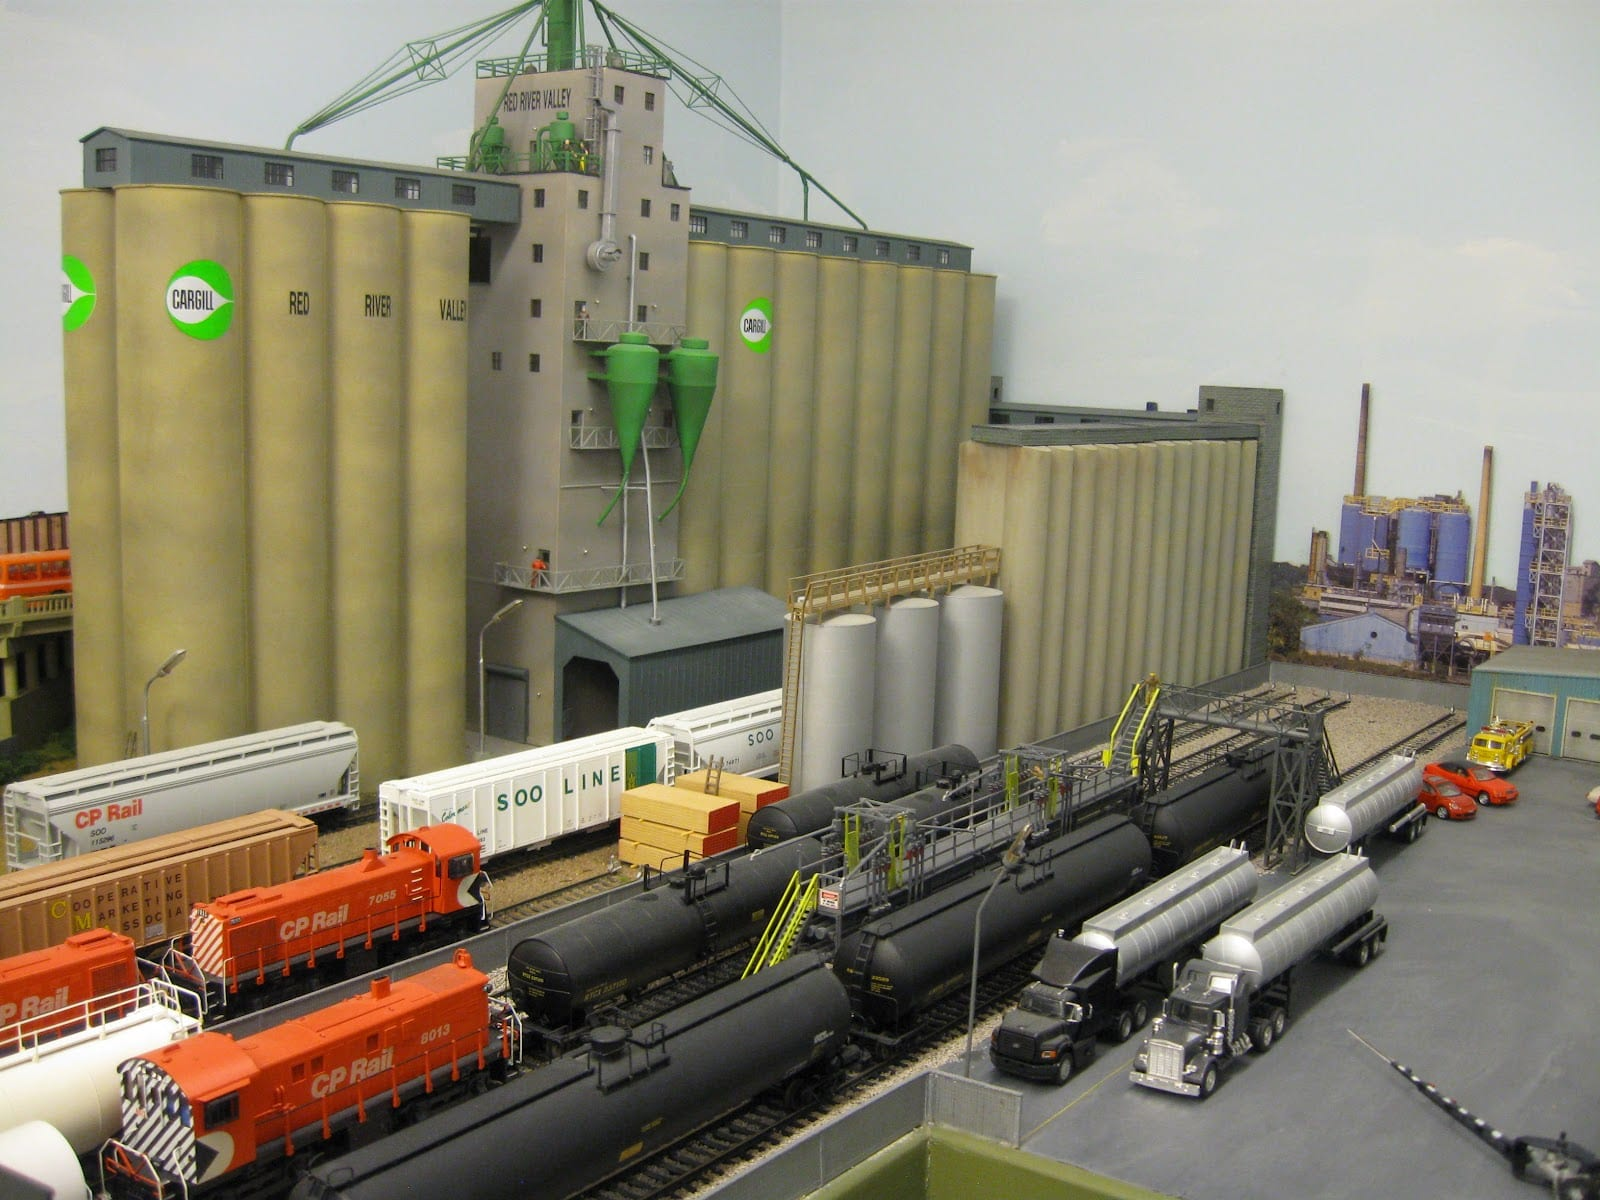 The northland route ho scale layout for Northland motor oils lubricants